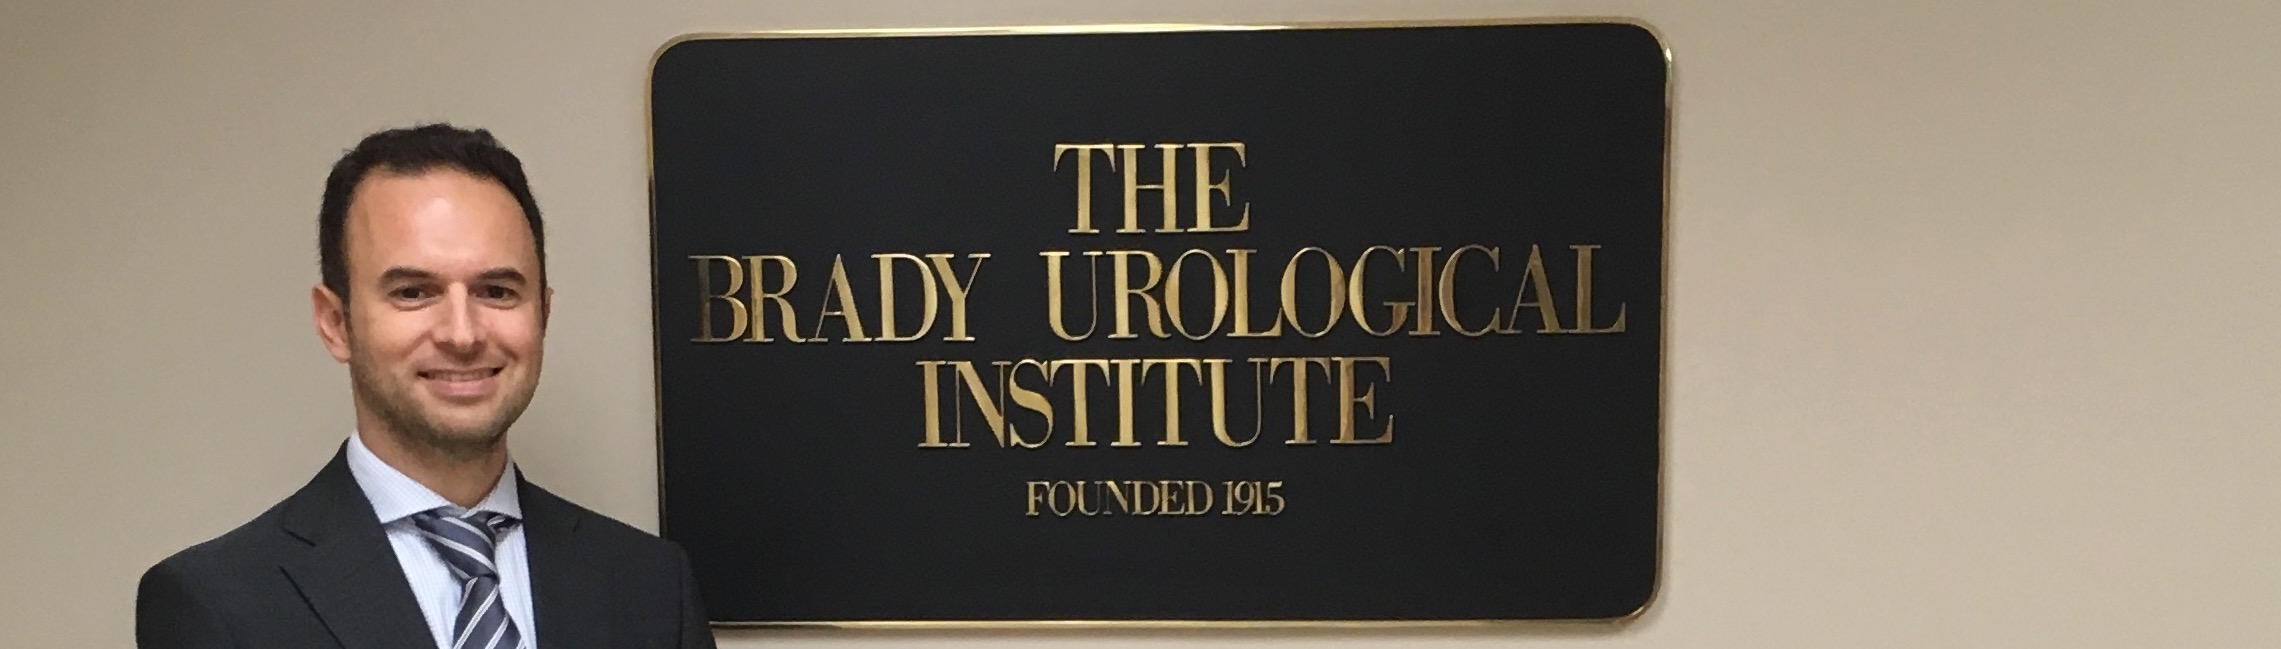 Brady Urological Institute